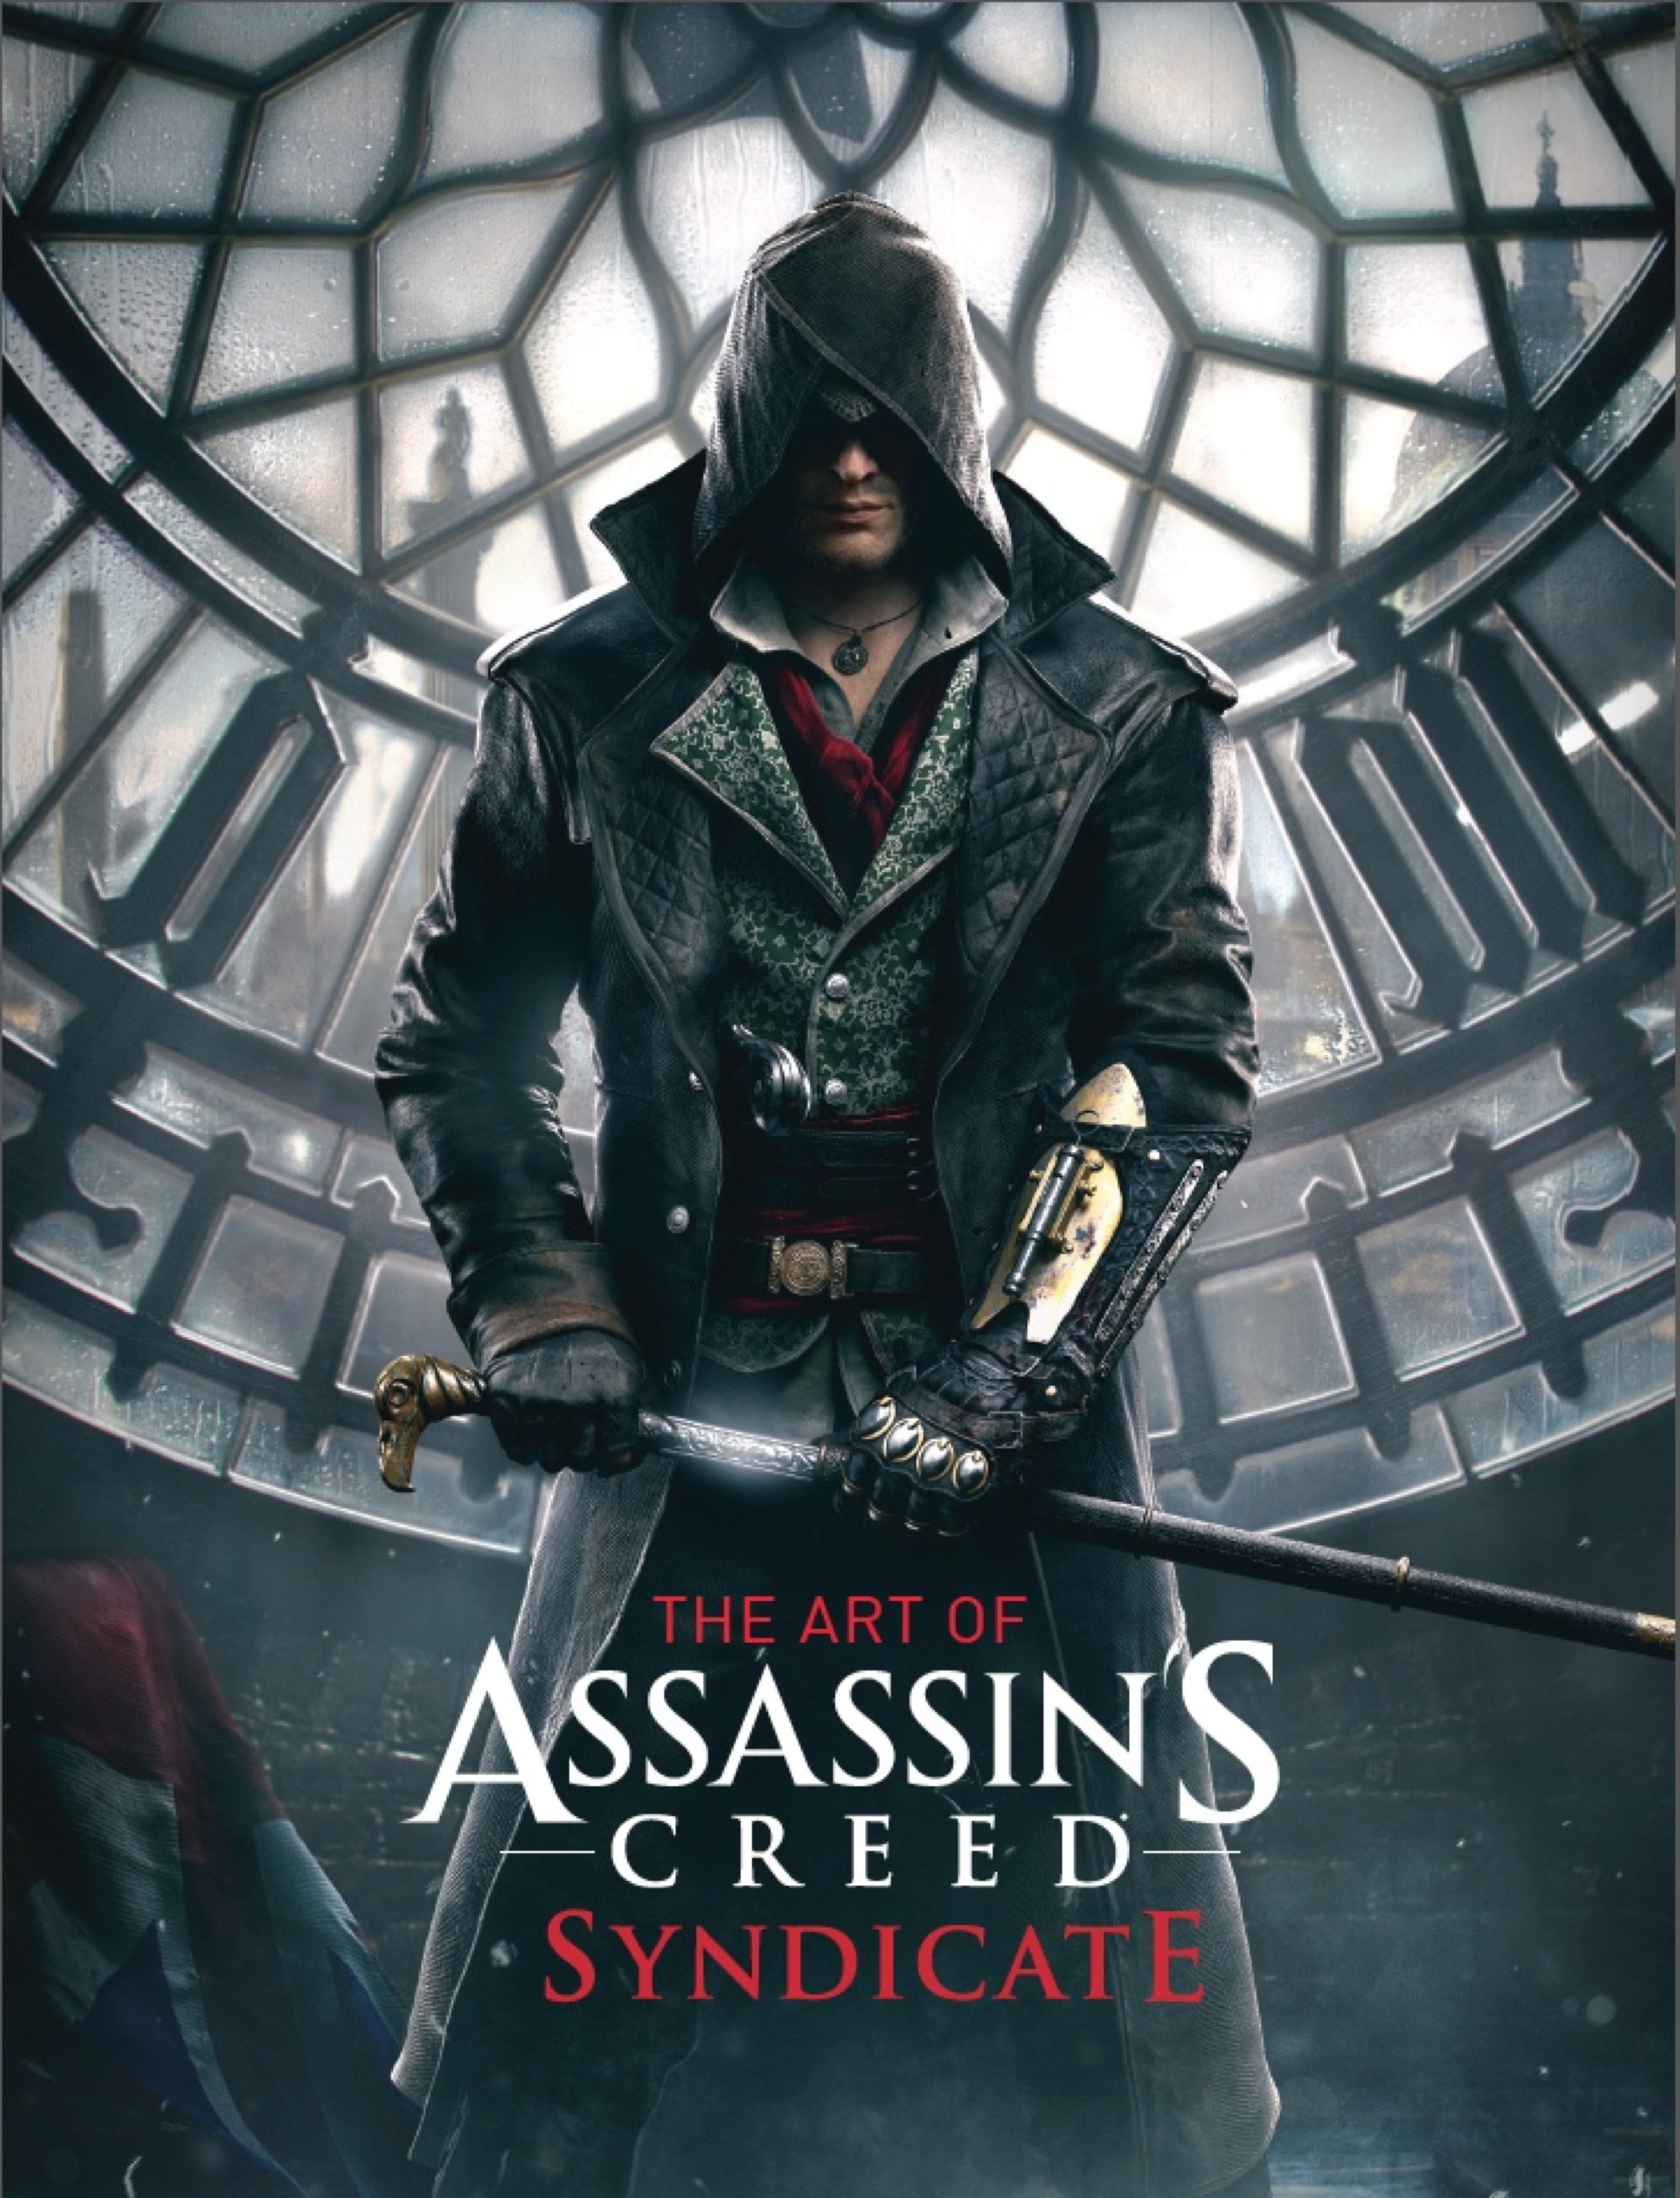 The Art of Assassin's Creed Syndicate | NewSouth Books